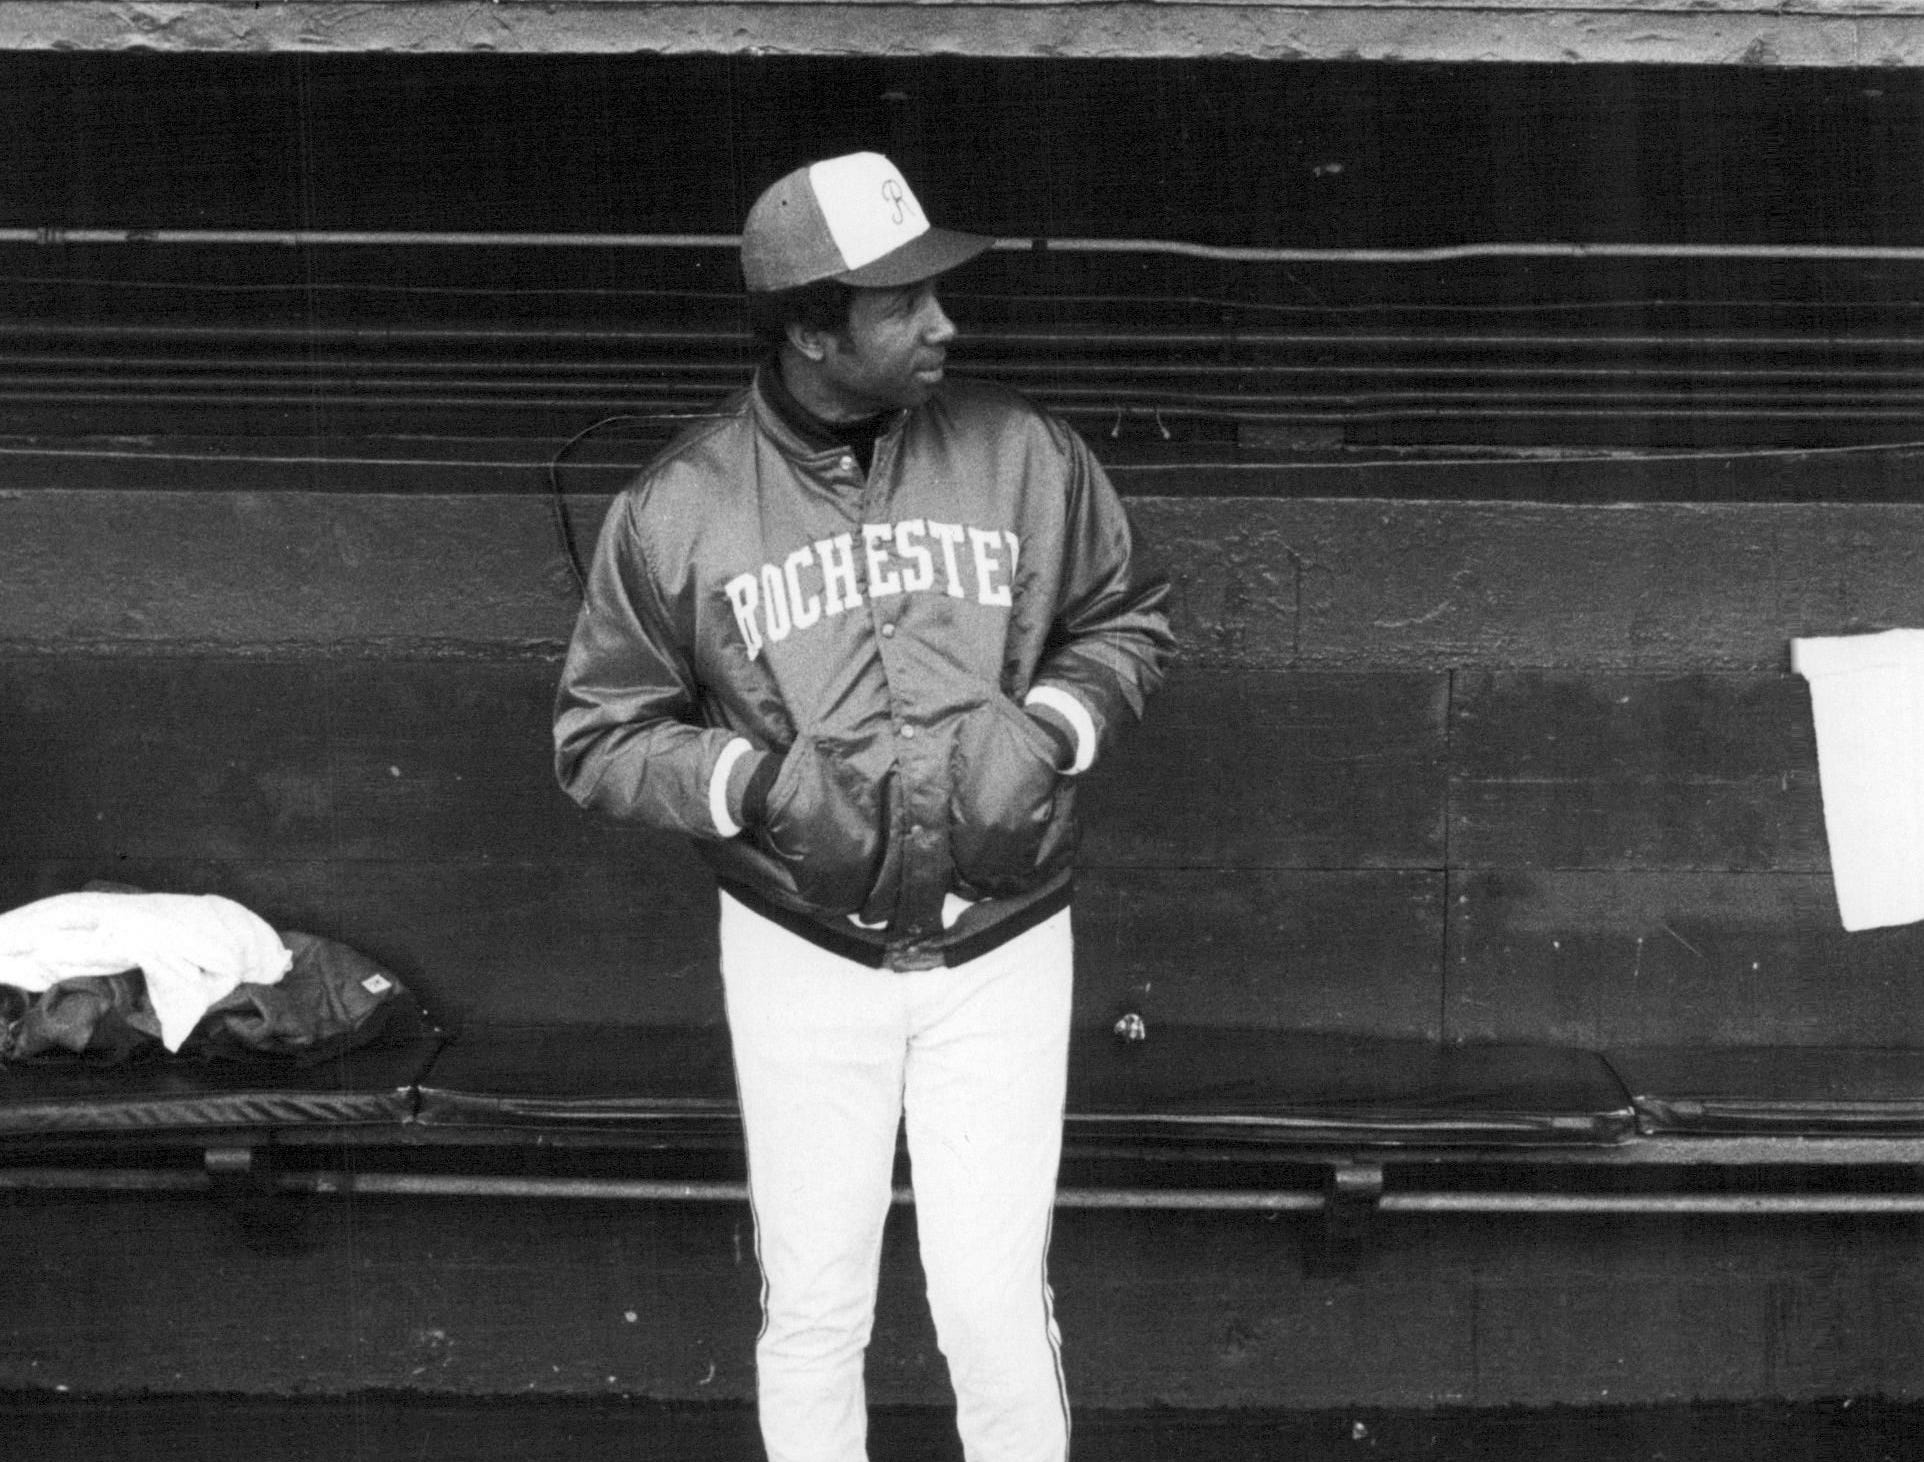 Rochester Red Wings manager Frank Robinson stands in the team's dugout prior to a game during the 1978 season.